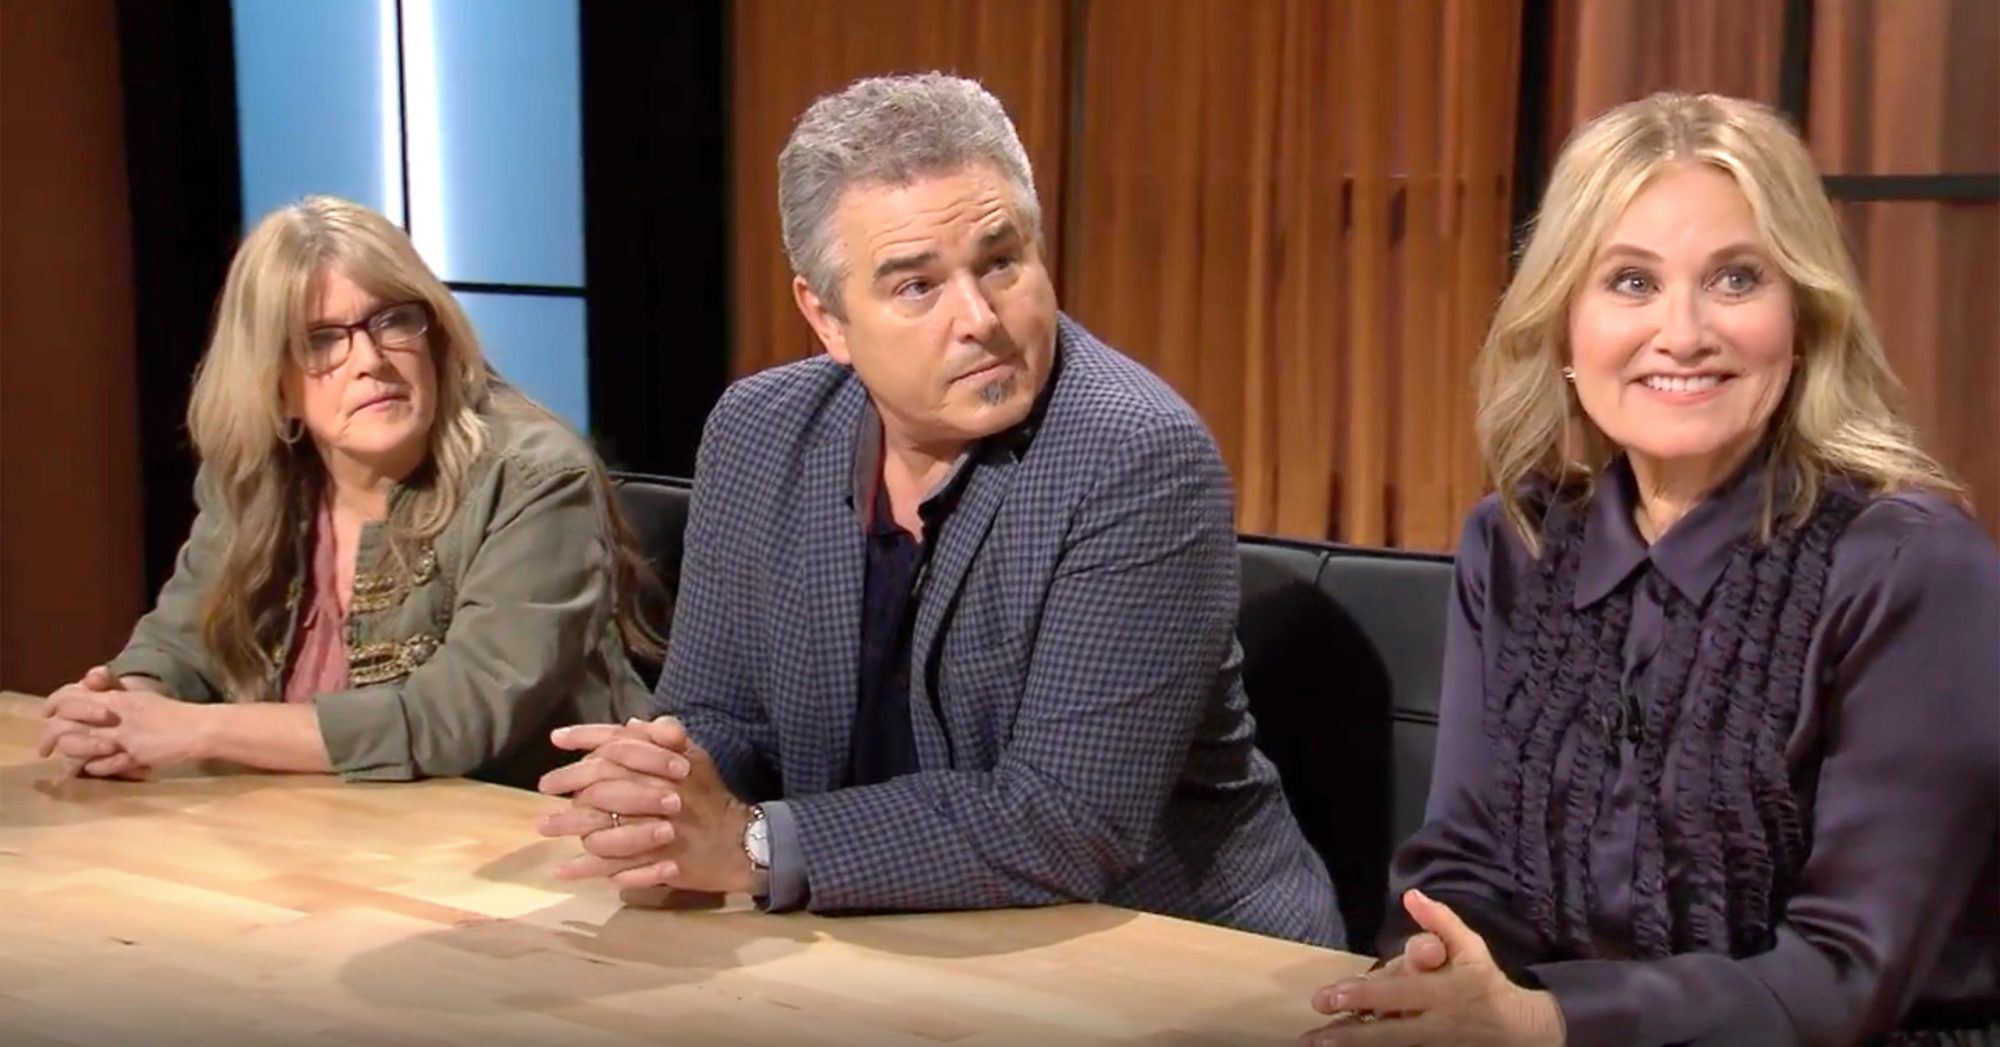 Chopped (screen grab) Susan Olsen, Christopher Knight, Maureen McCormick CR: Food Network